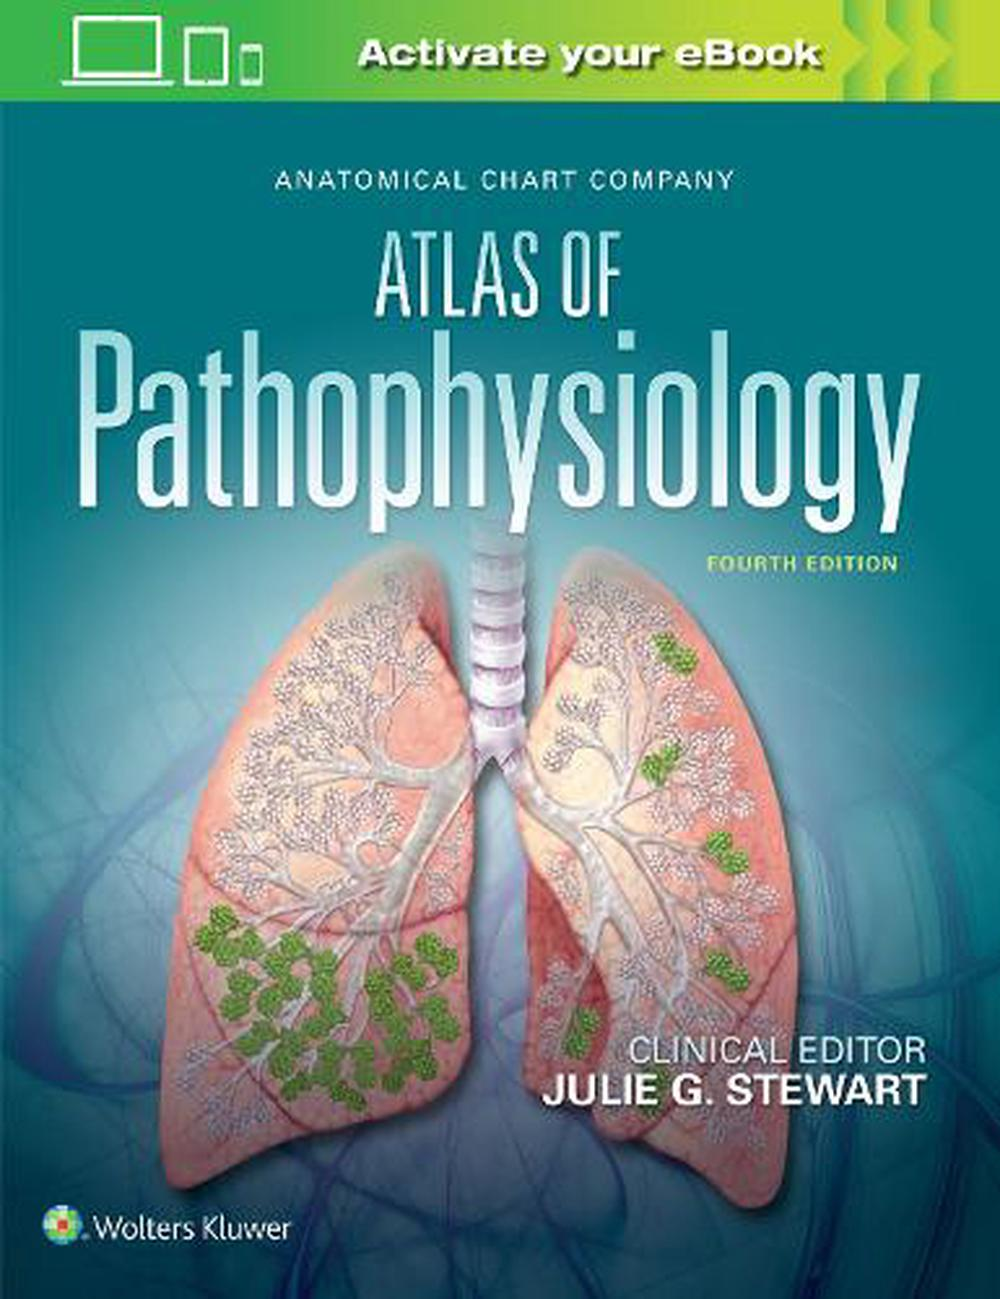 Anatomical Chart Company Atlas Of Pathophysiology By Julie Stewart